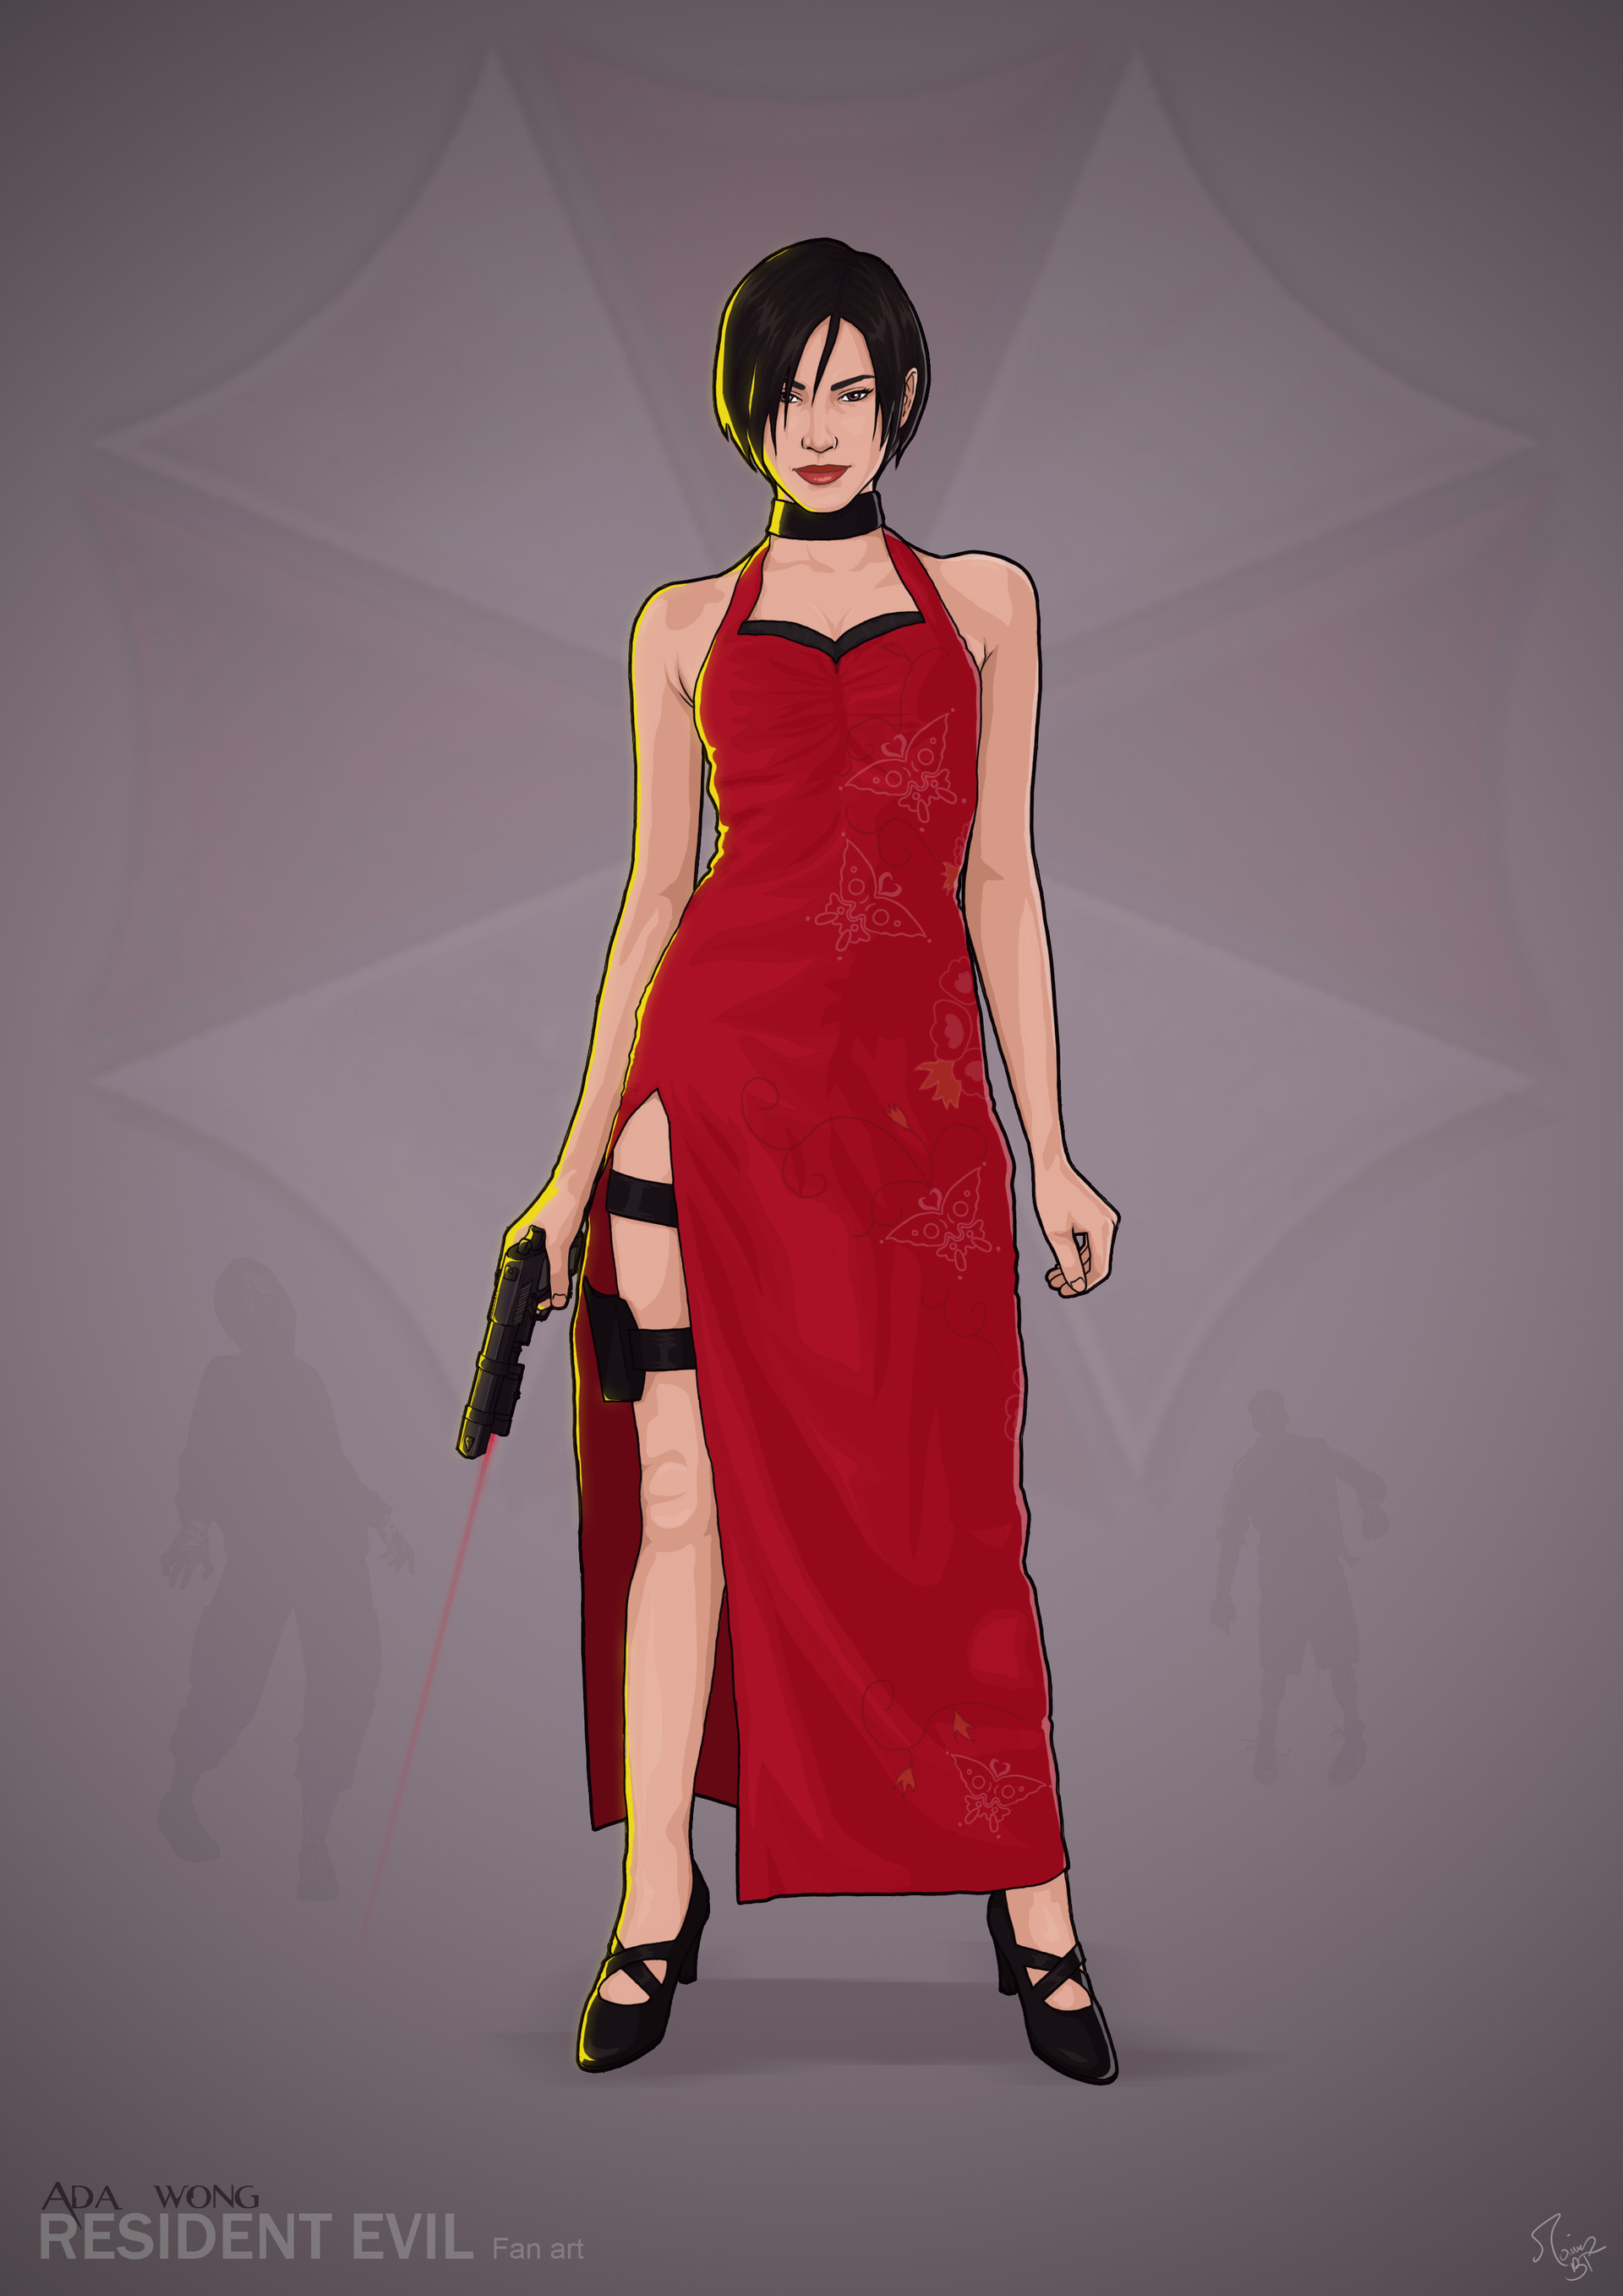 welovetoys: News: Biohazard 4 HD - 1/6 scale Ada Wong from